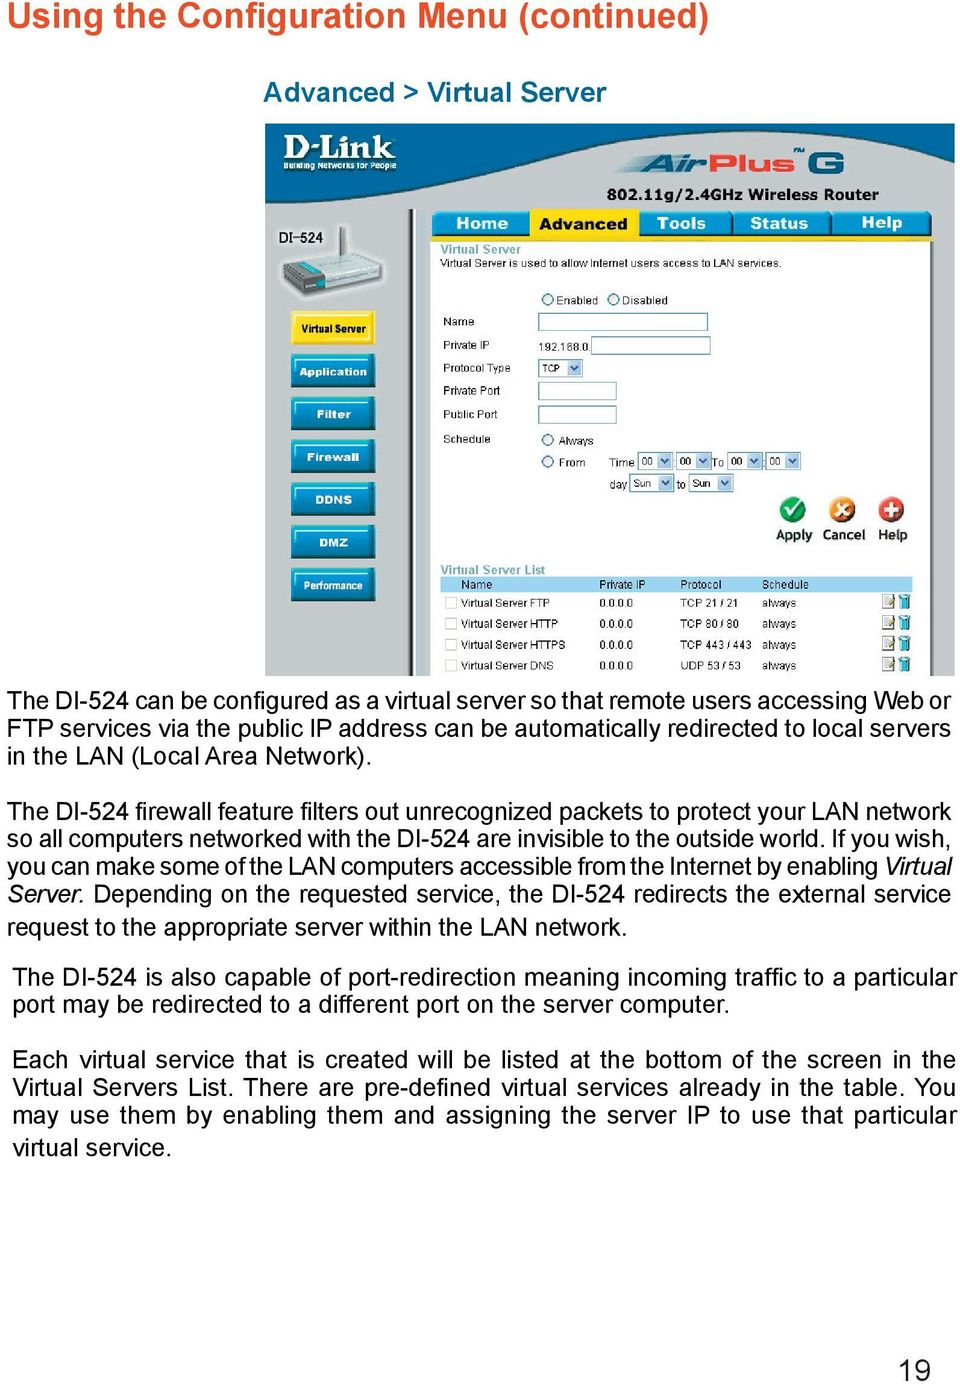 The DI-524 firewall feature filters out unrecognized packets to protect your LAN network so all computers networked with the DI-524 are invisible to the outside world.